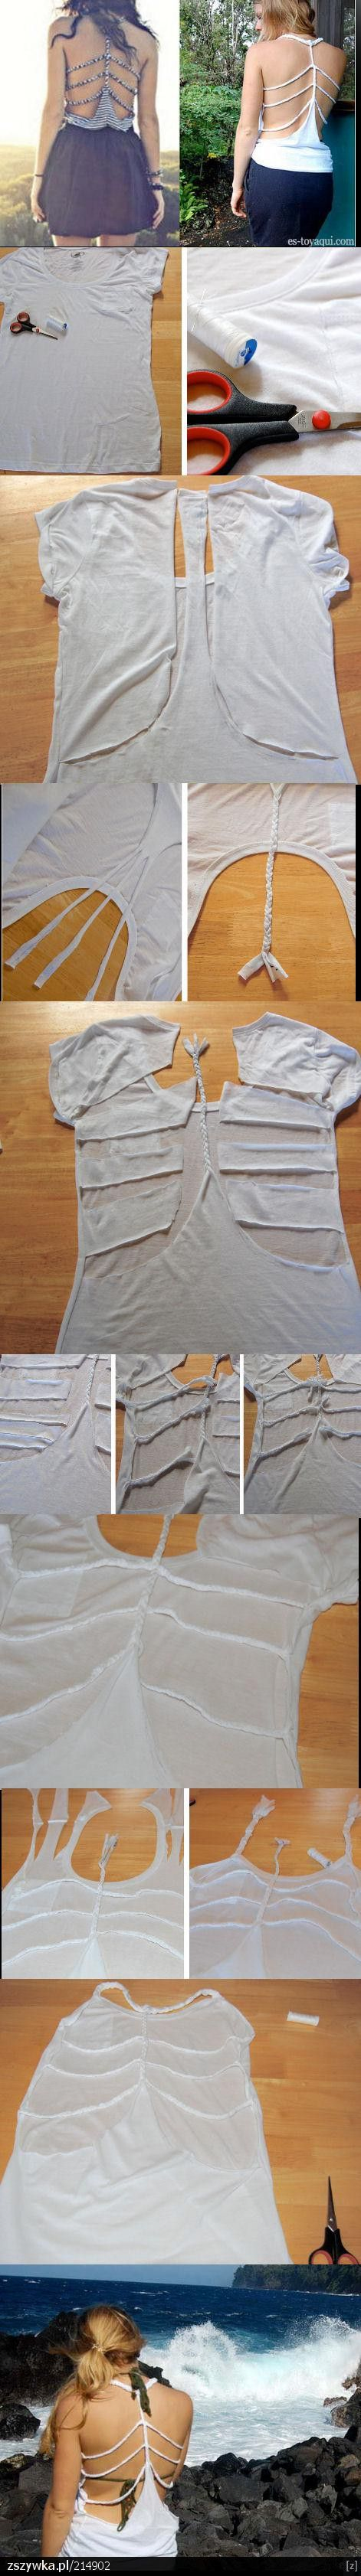 t-shirt cutting ideas